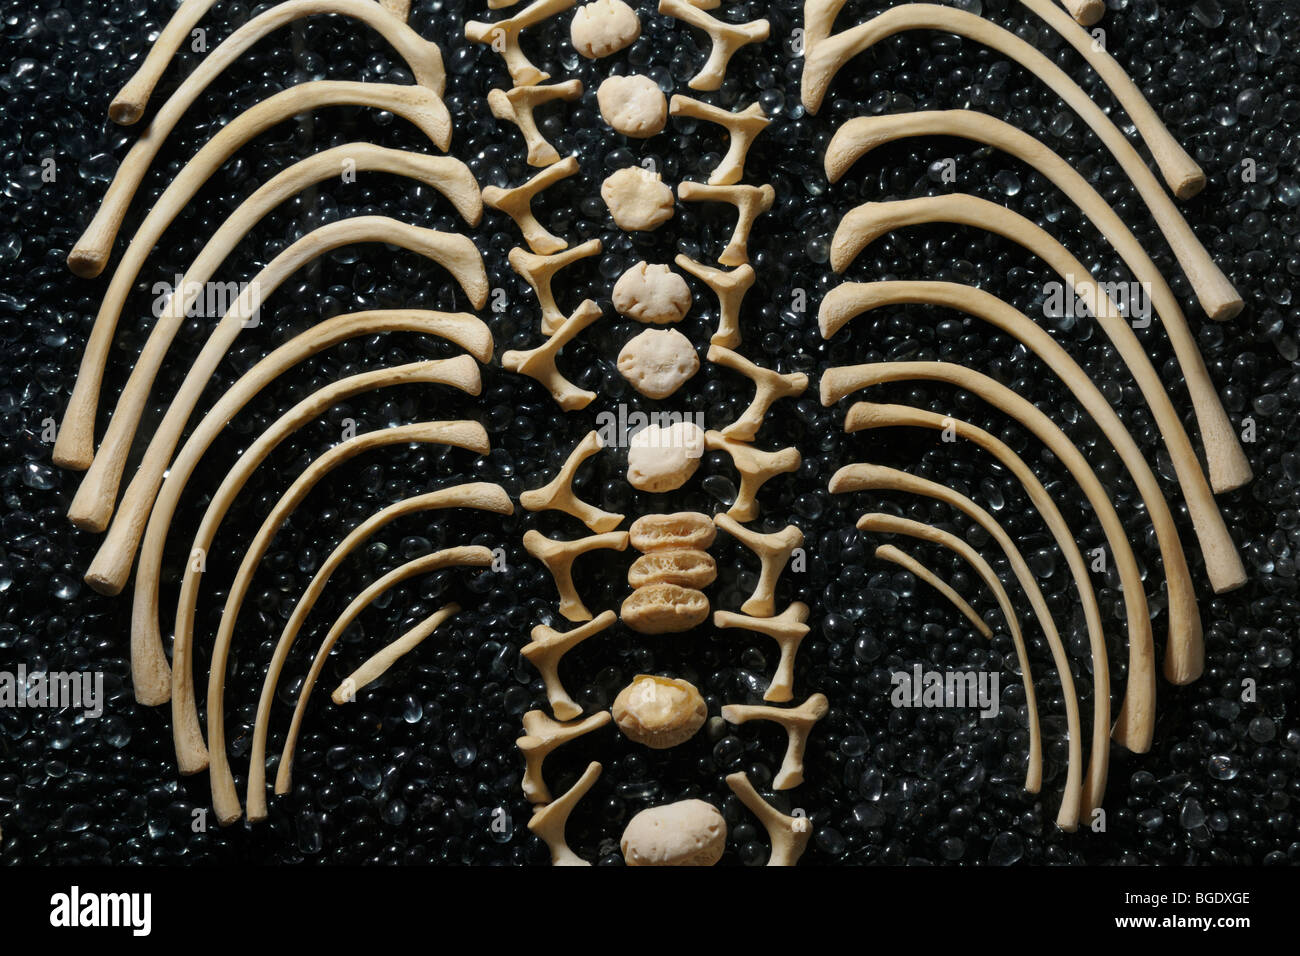 Disarticulated skeleton of a child showing vertebral column and ribs, Smithsonian Museum - Stock Image